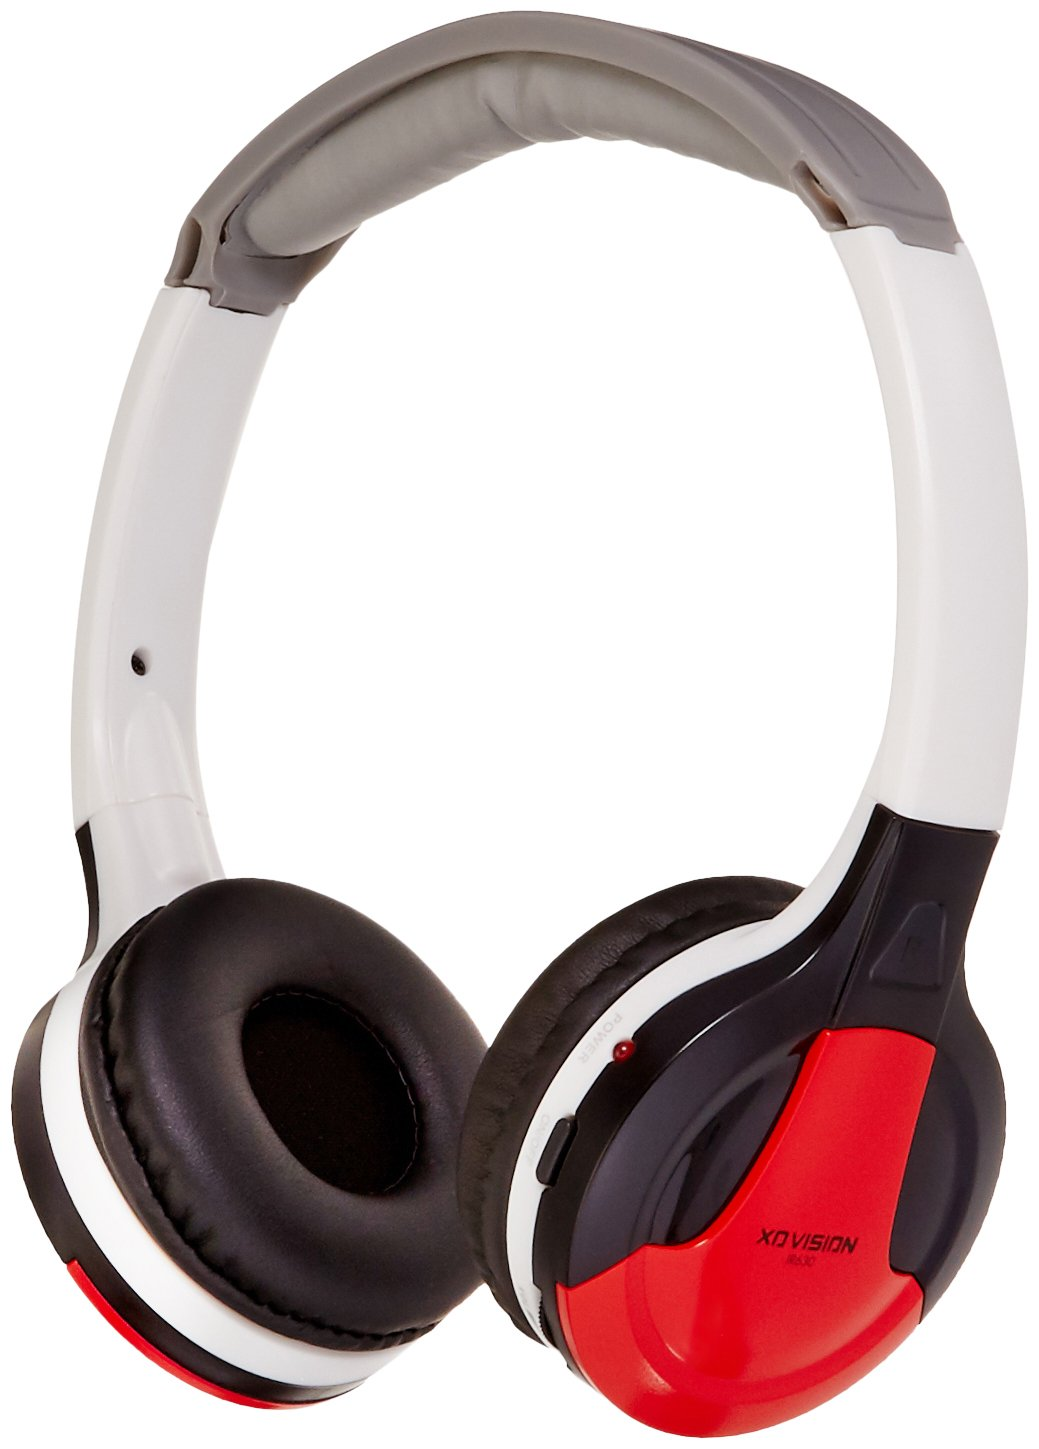 XO Vision IR630R Universal IR in Car Entertainment Wireless Foldable Headphones, Red by XO Vision